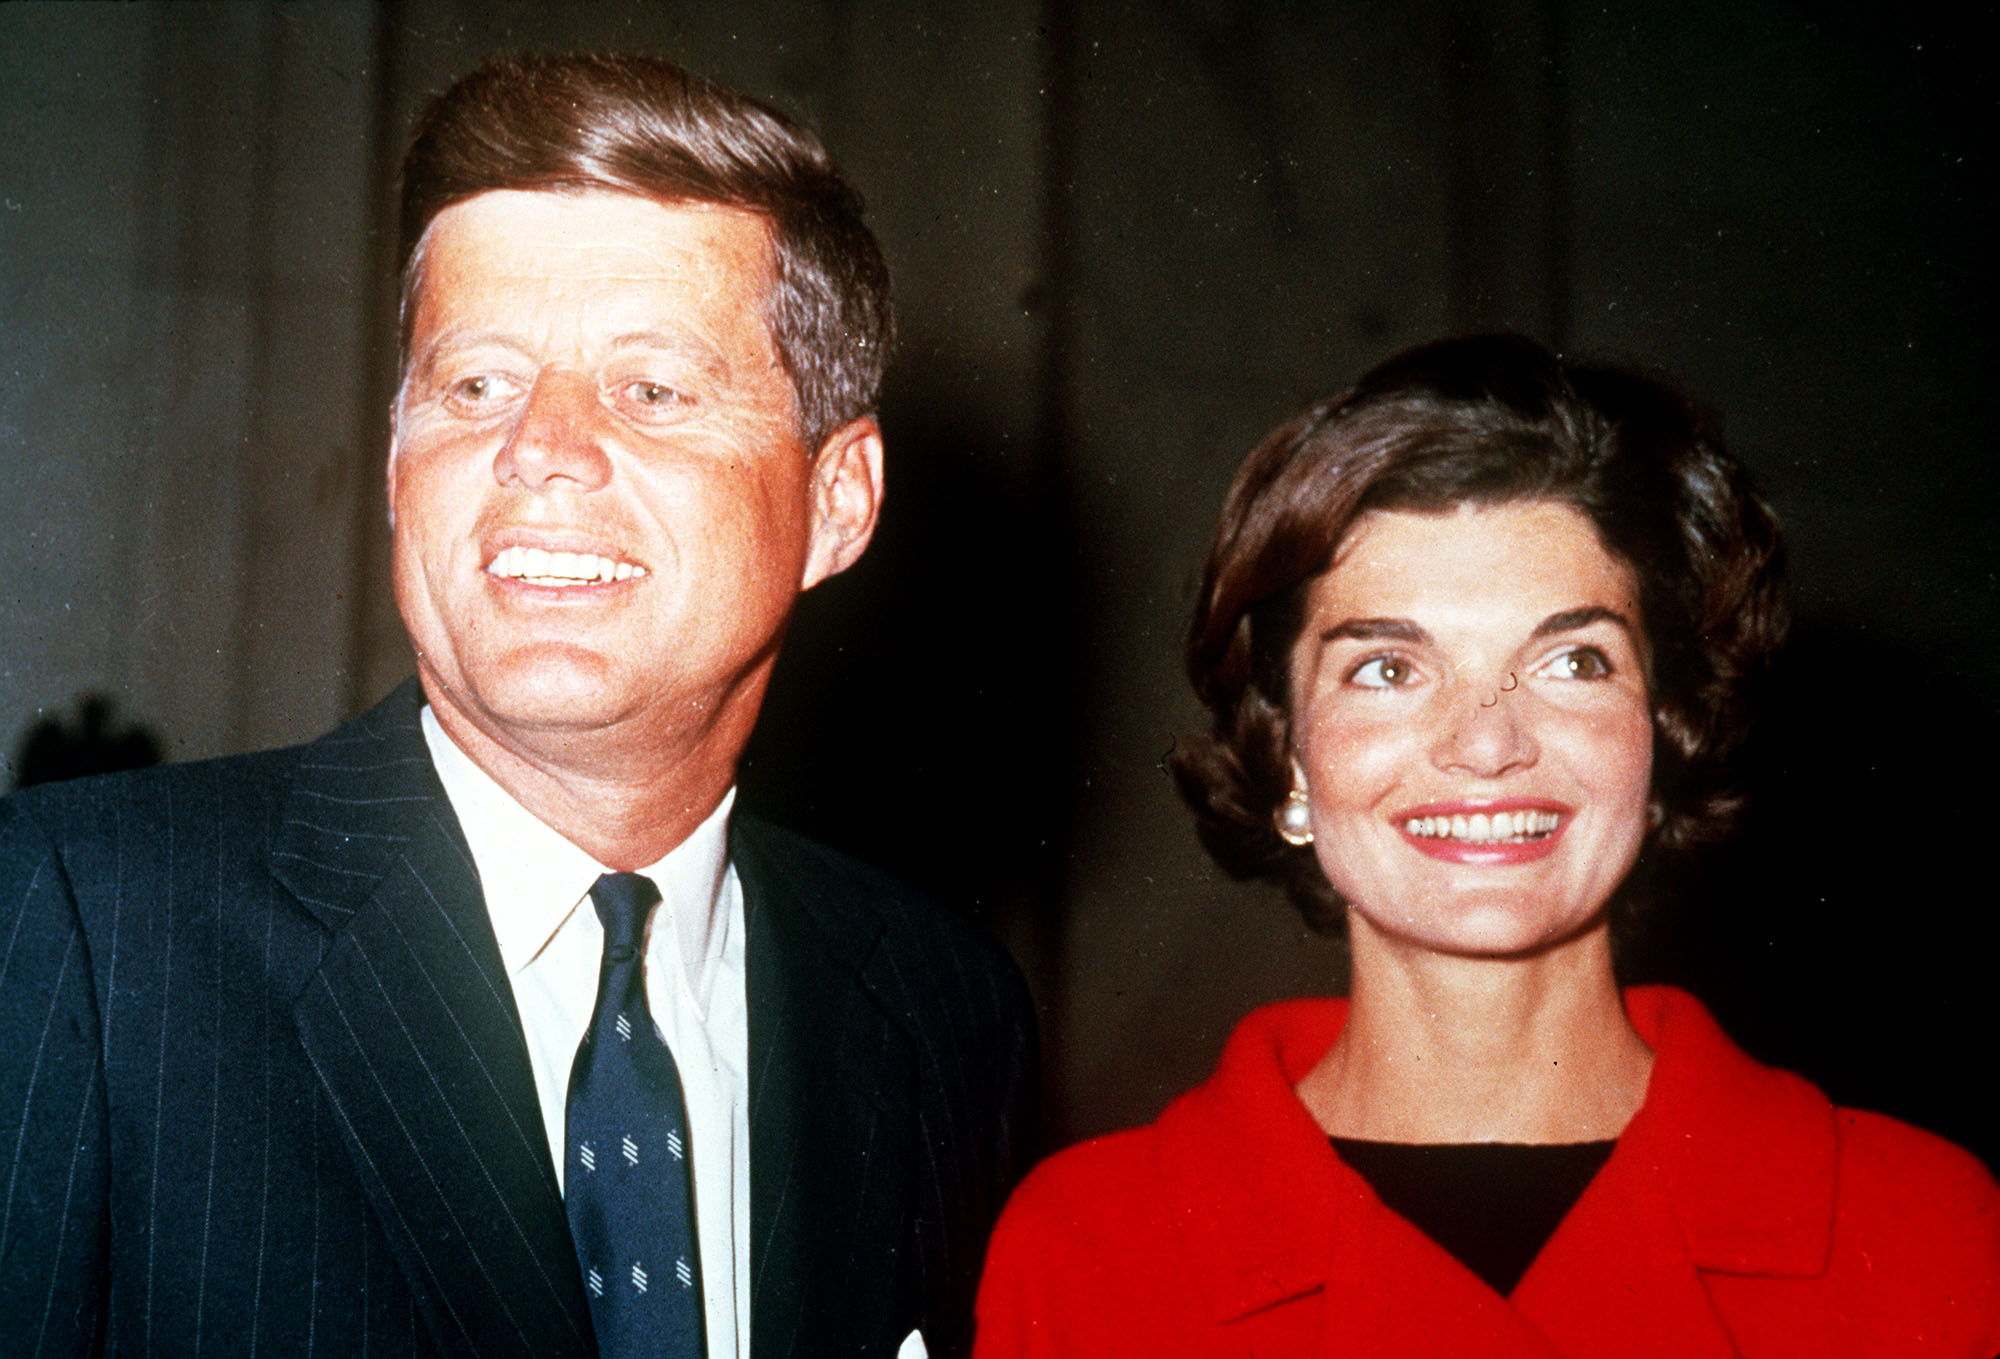 John K. Kennedy and his wife Jackie, during the White House years.